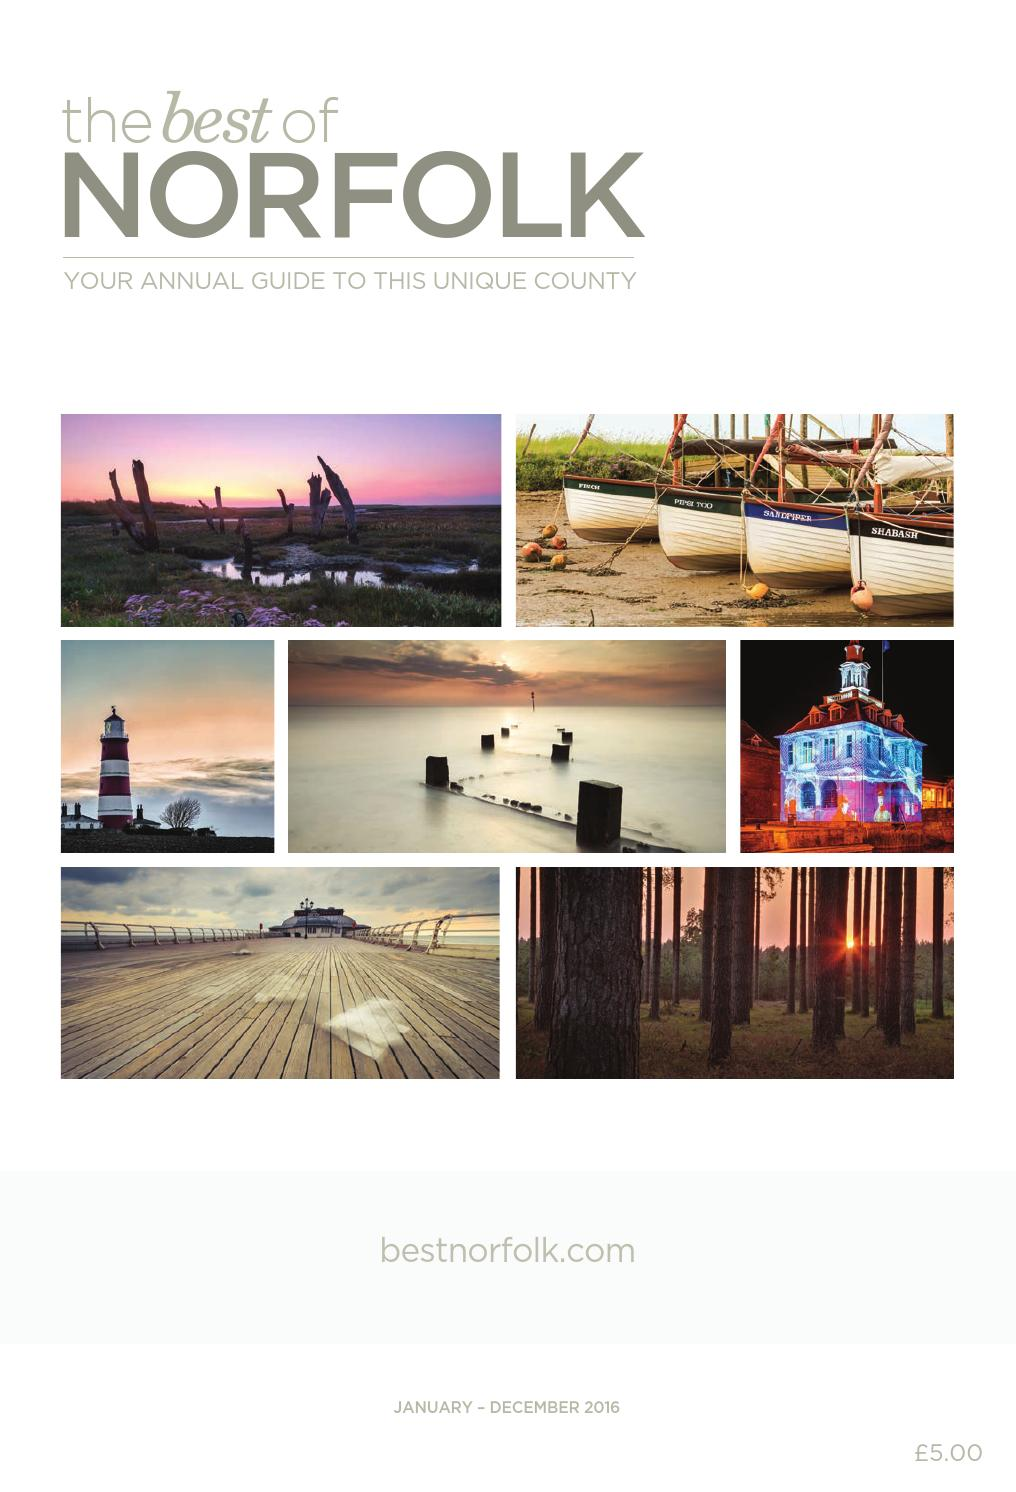 a22174dfa7a Best of Norfolk 2016 by Tilston Phillips - issuu